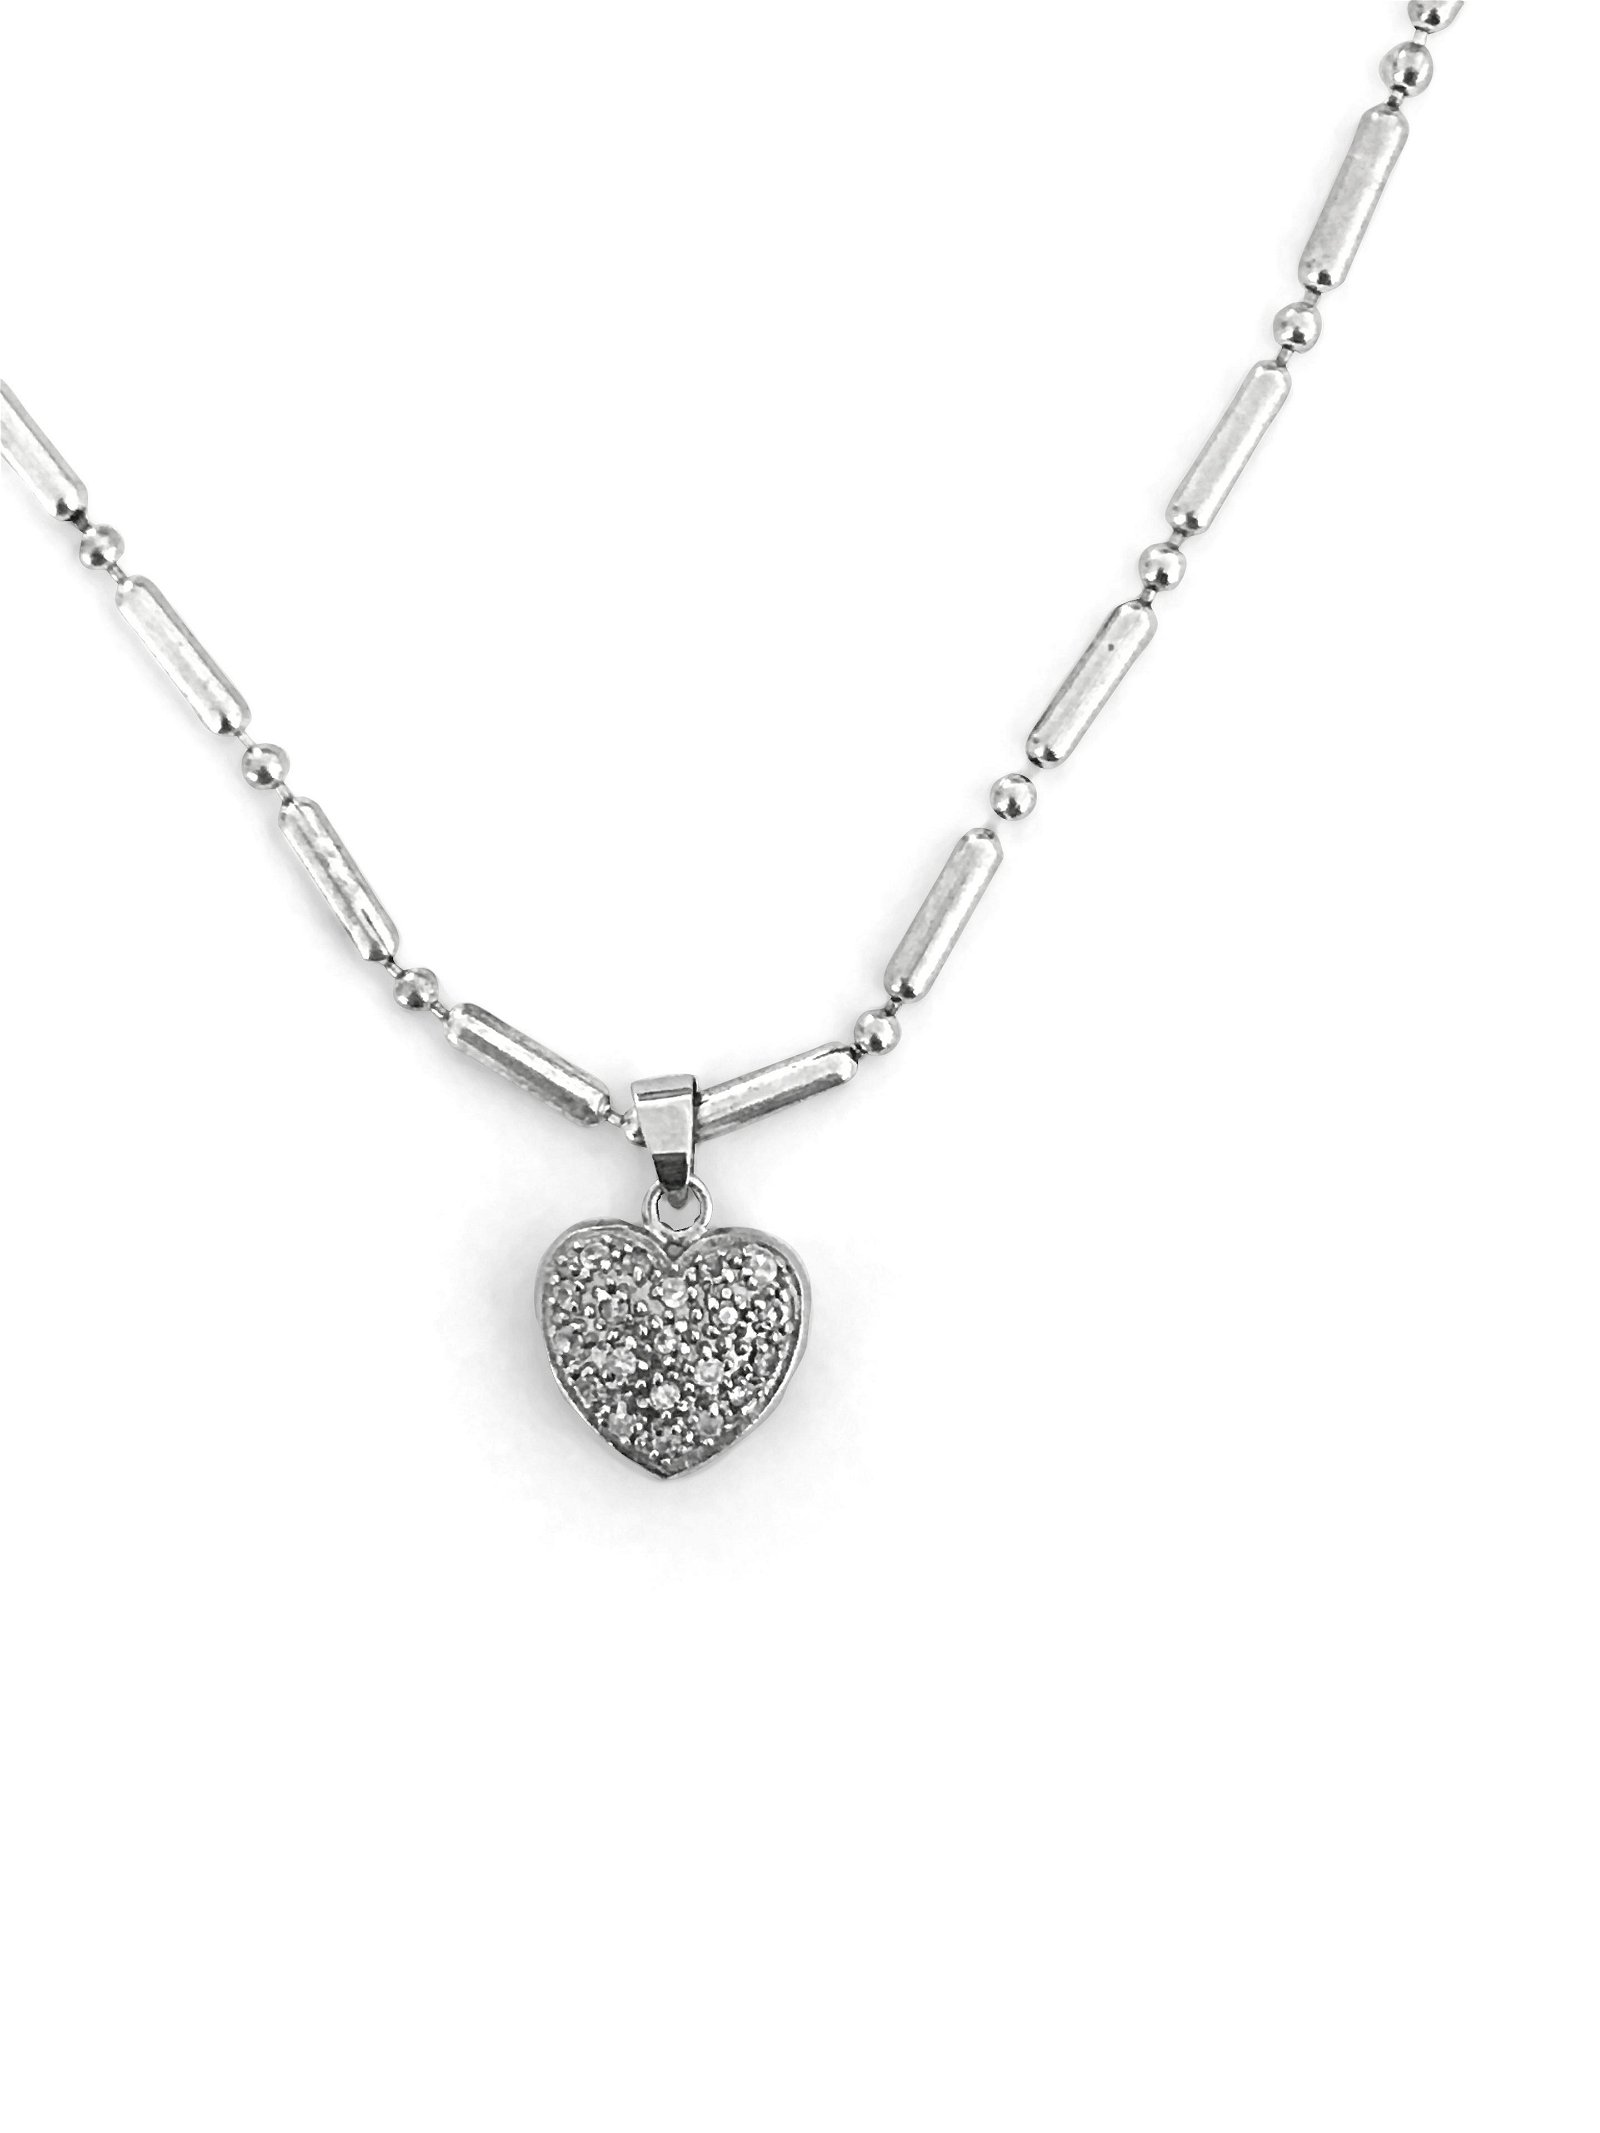 Made In Italy, Silver Heart Pendant & Necklace